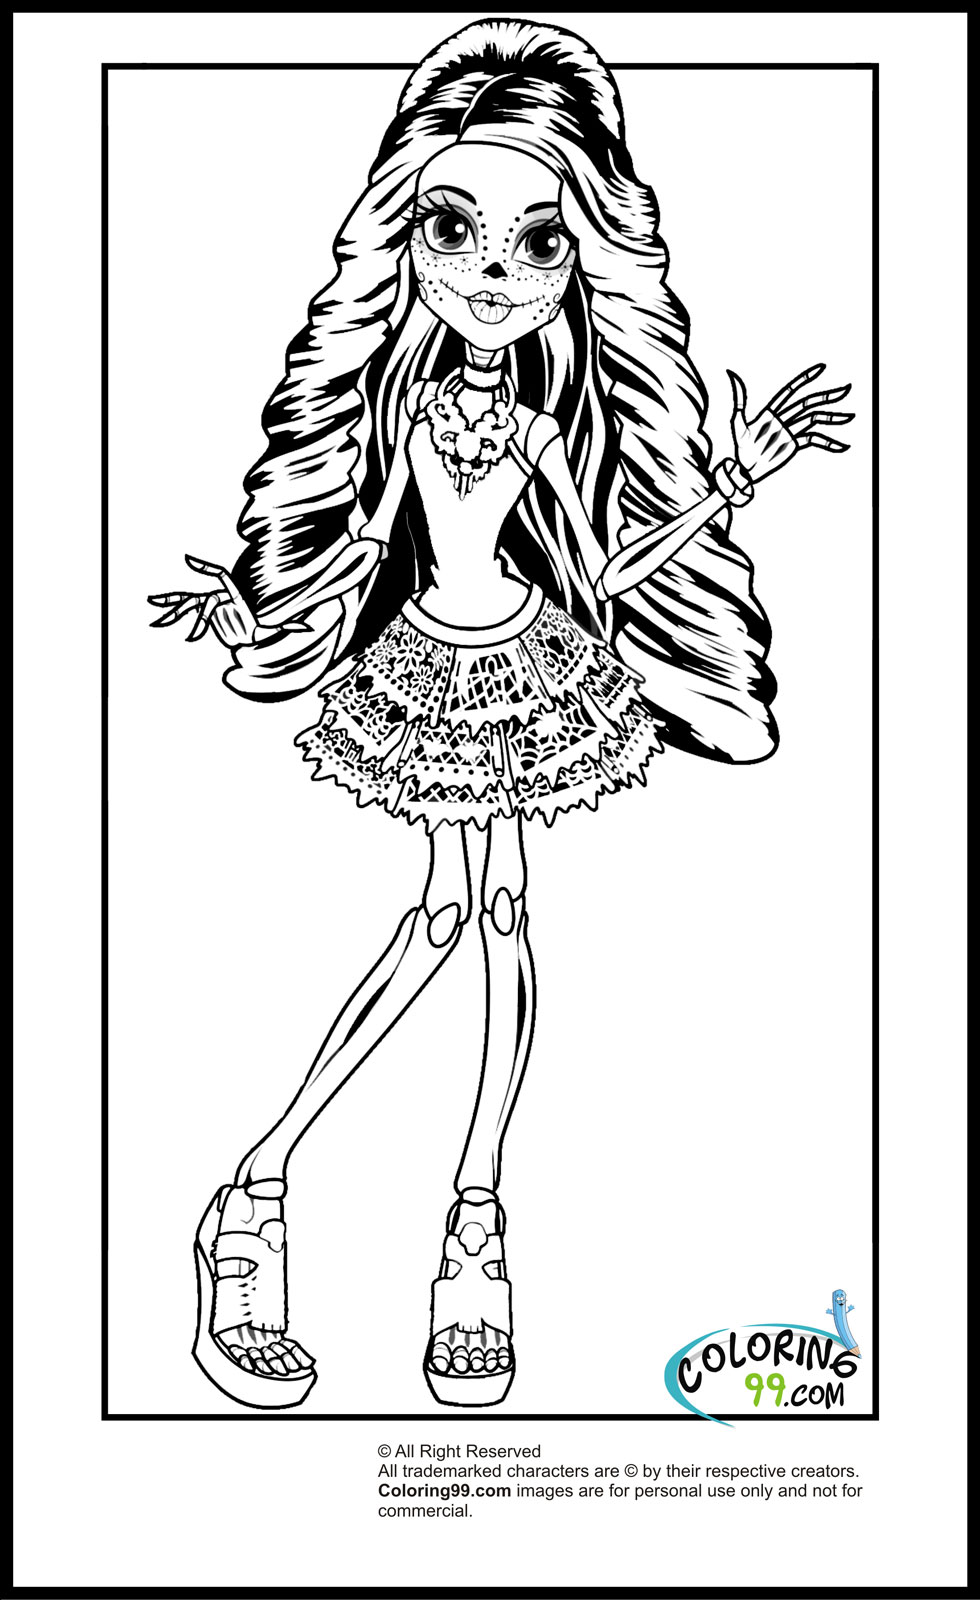 scaris monster high coloring pages - photo#1